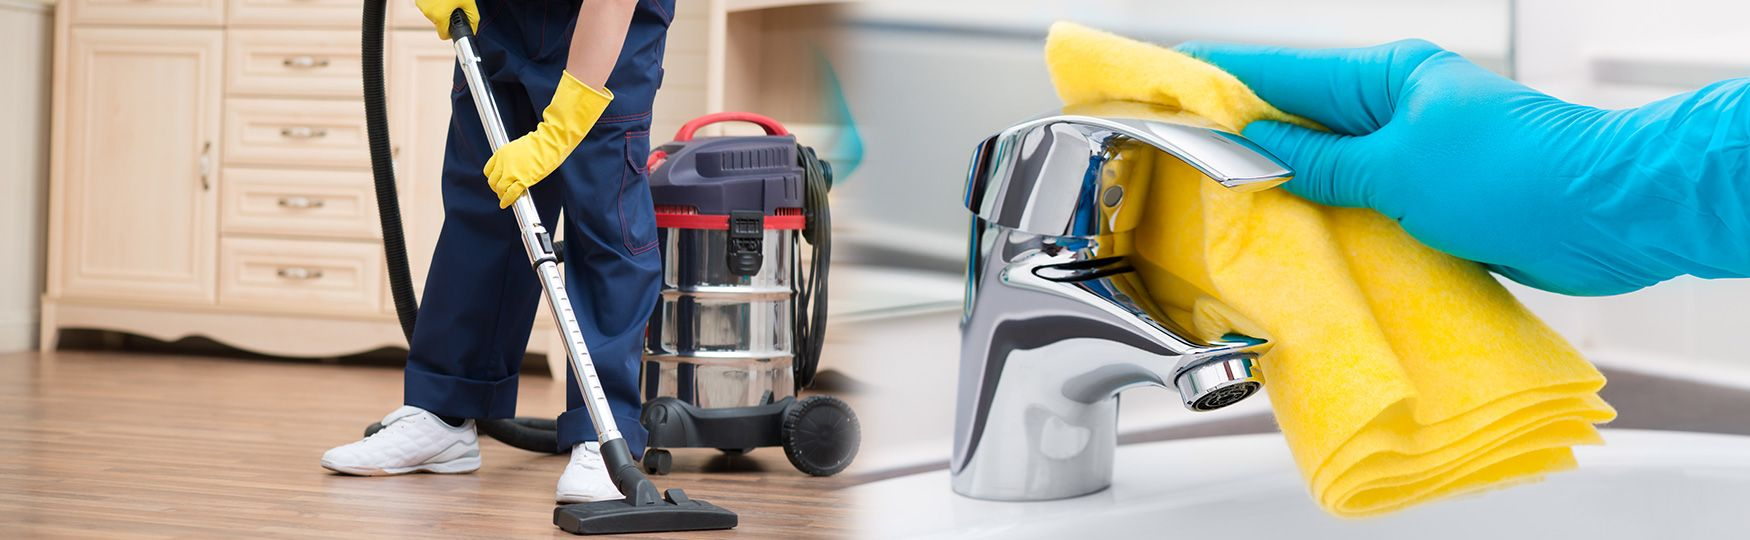 How the end of lease cleaning and regular cleaning is different?